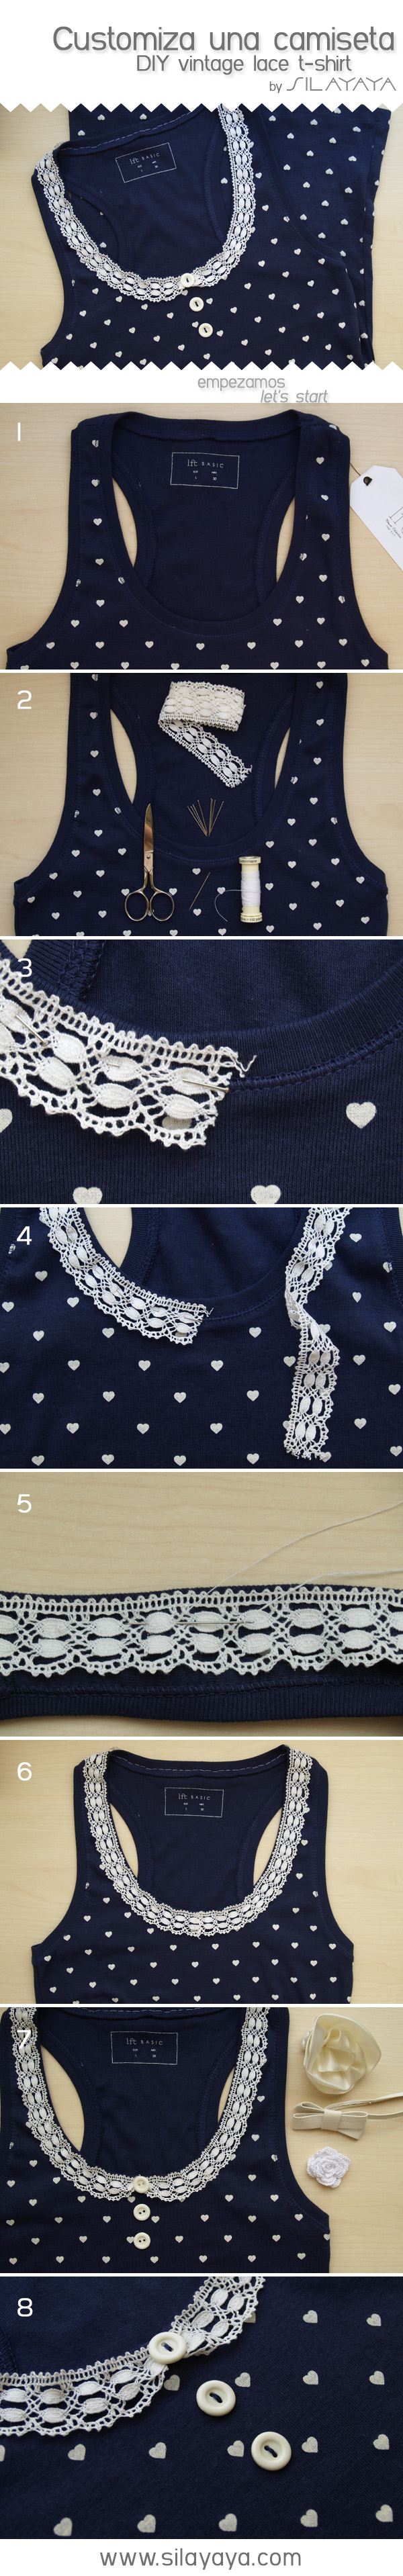 tutorial camiseta puntilla / DIY lace t-shirt